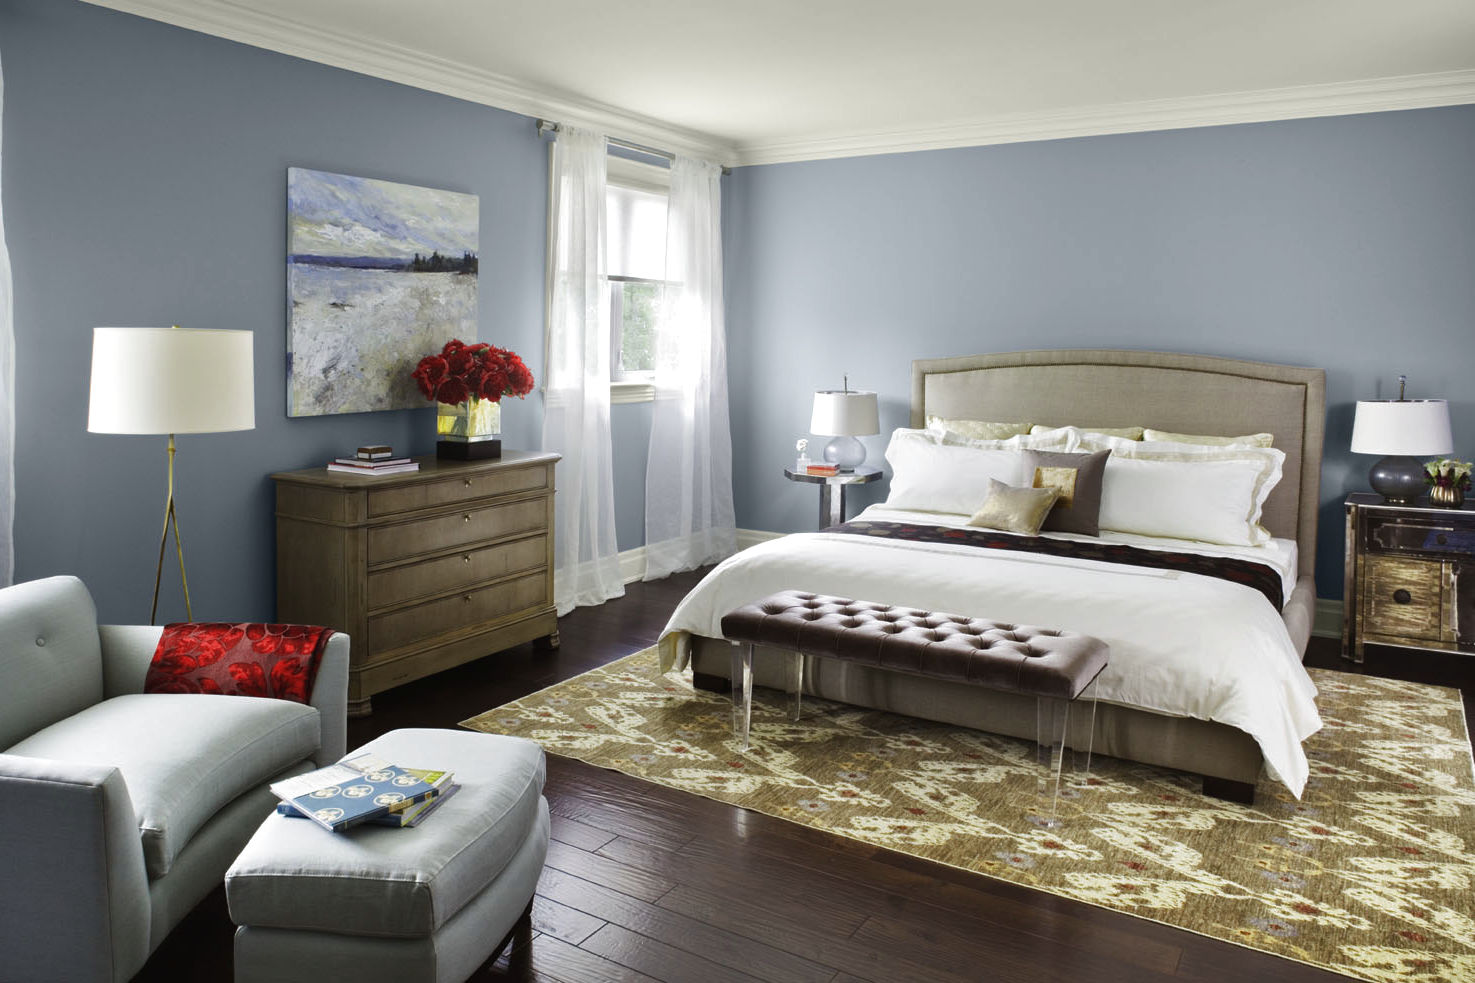 Applying The Accurate Bedroom Paint Colors Artmakehome